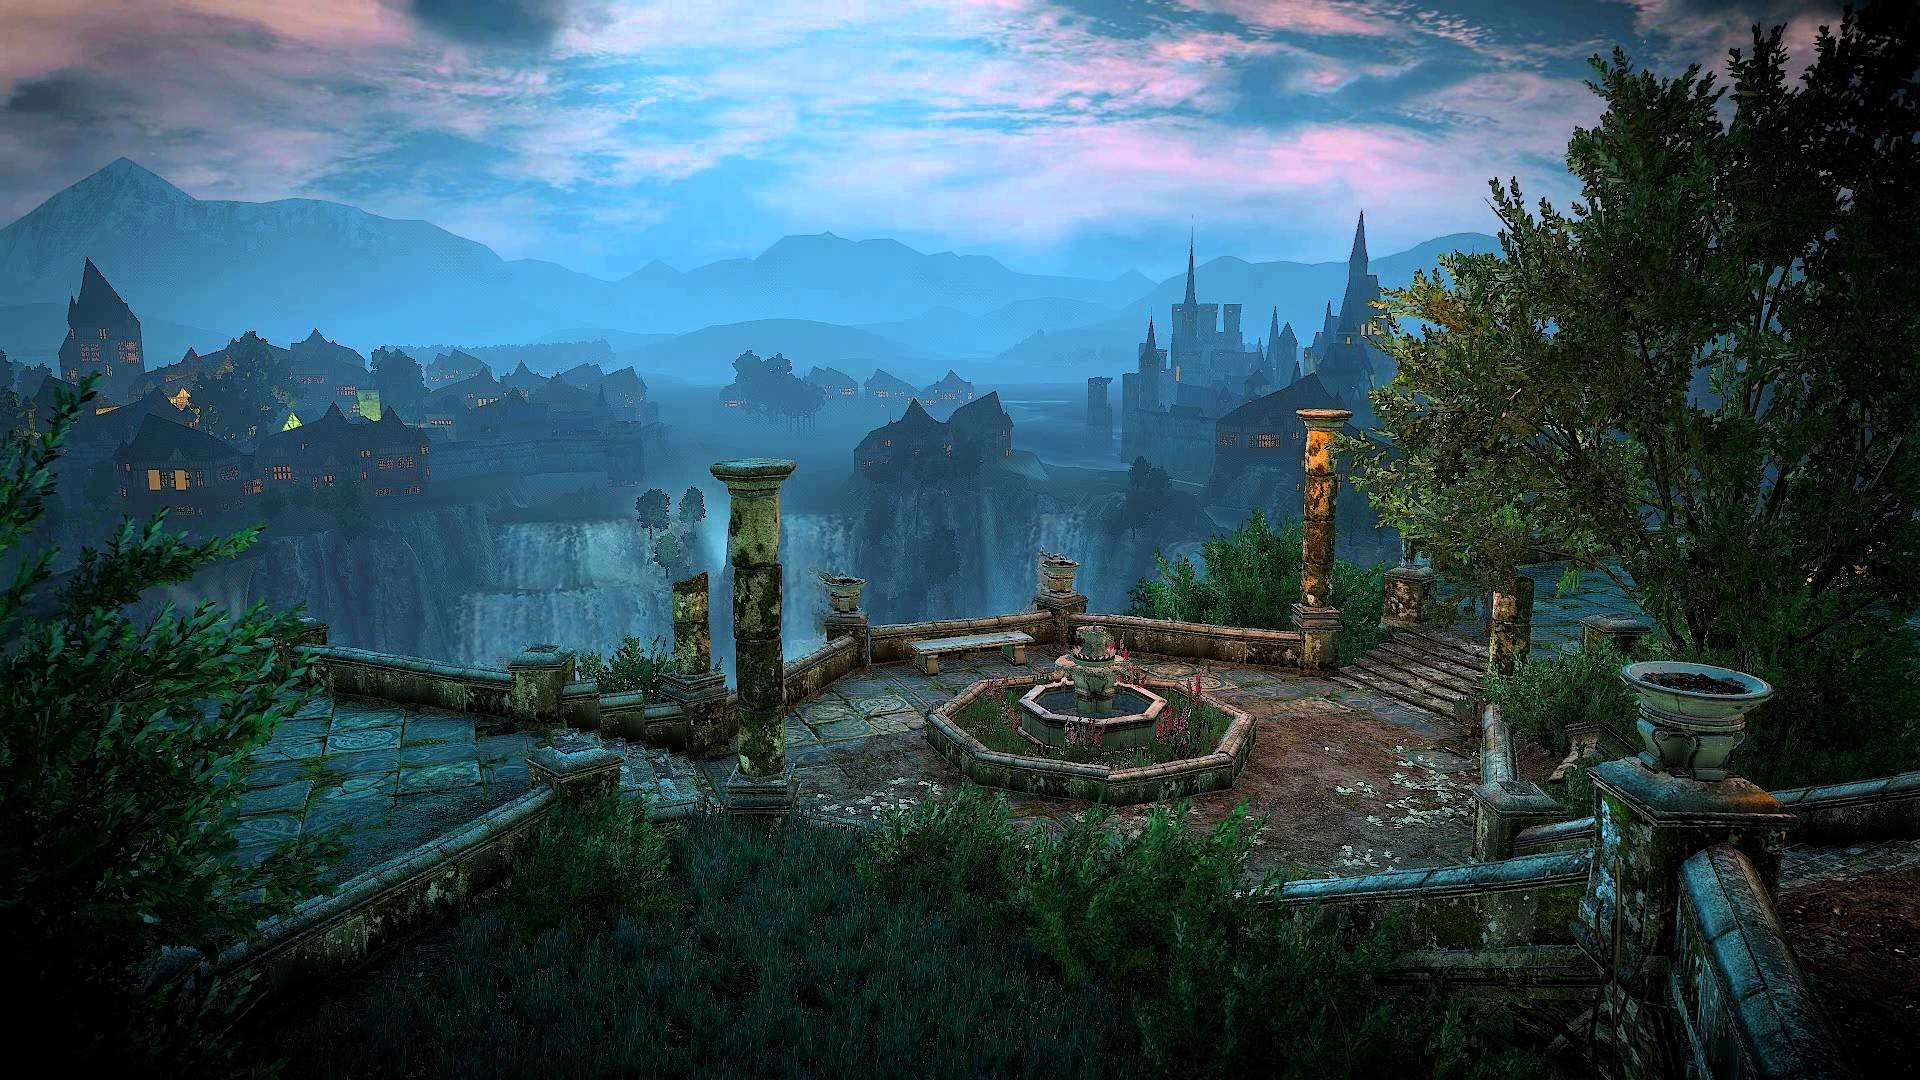 The Witcher 3 Wallpaper 1920x1080: Witcher 3 1080p Wallpaper (88+ Images